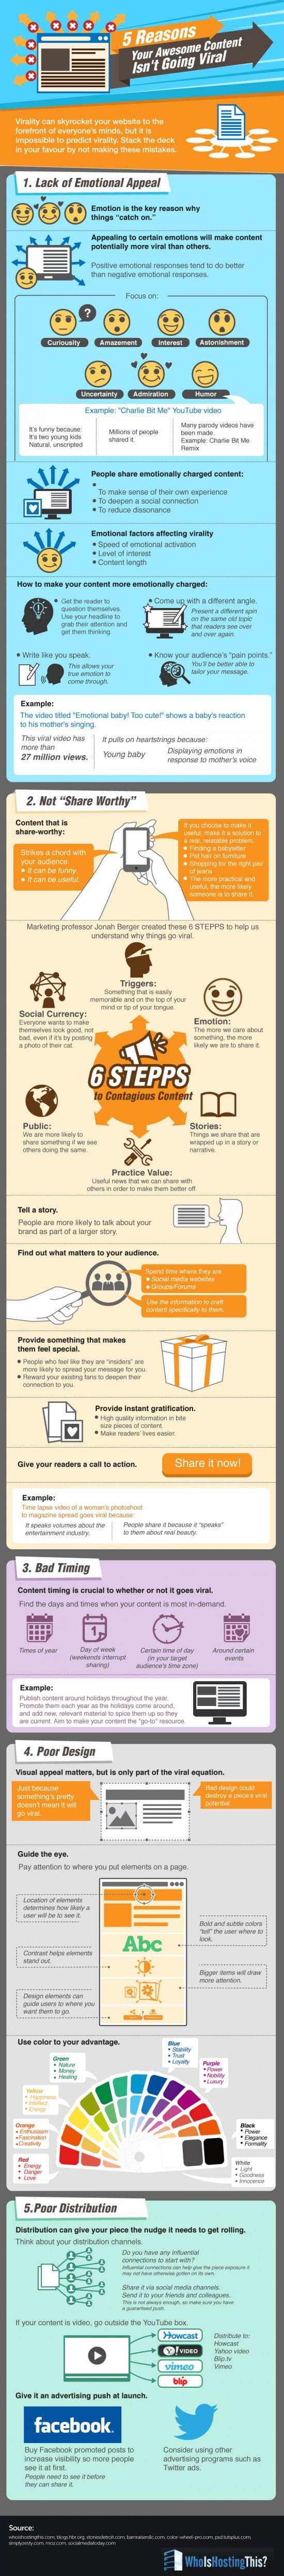 Infographic - ideas to make content viral